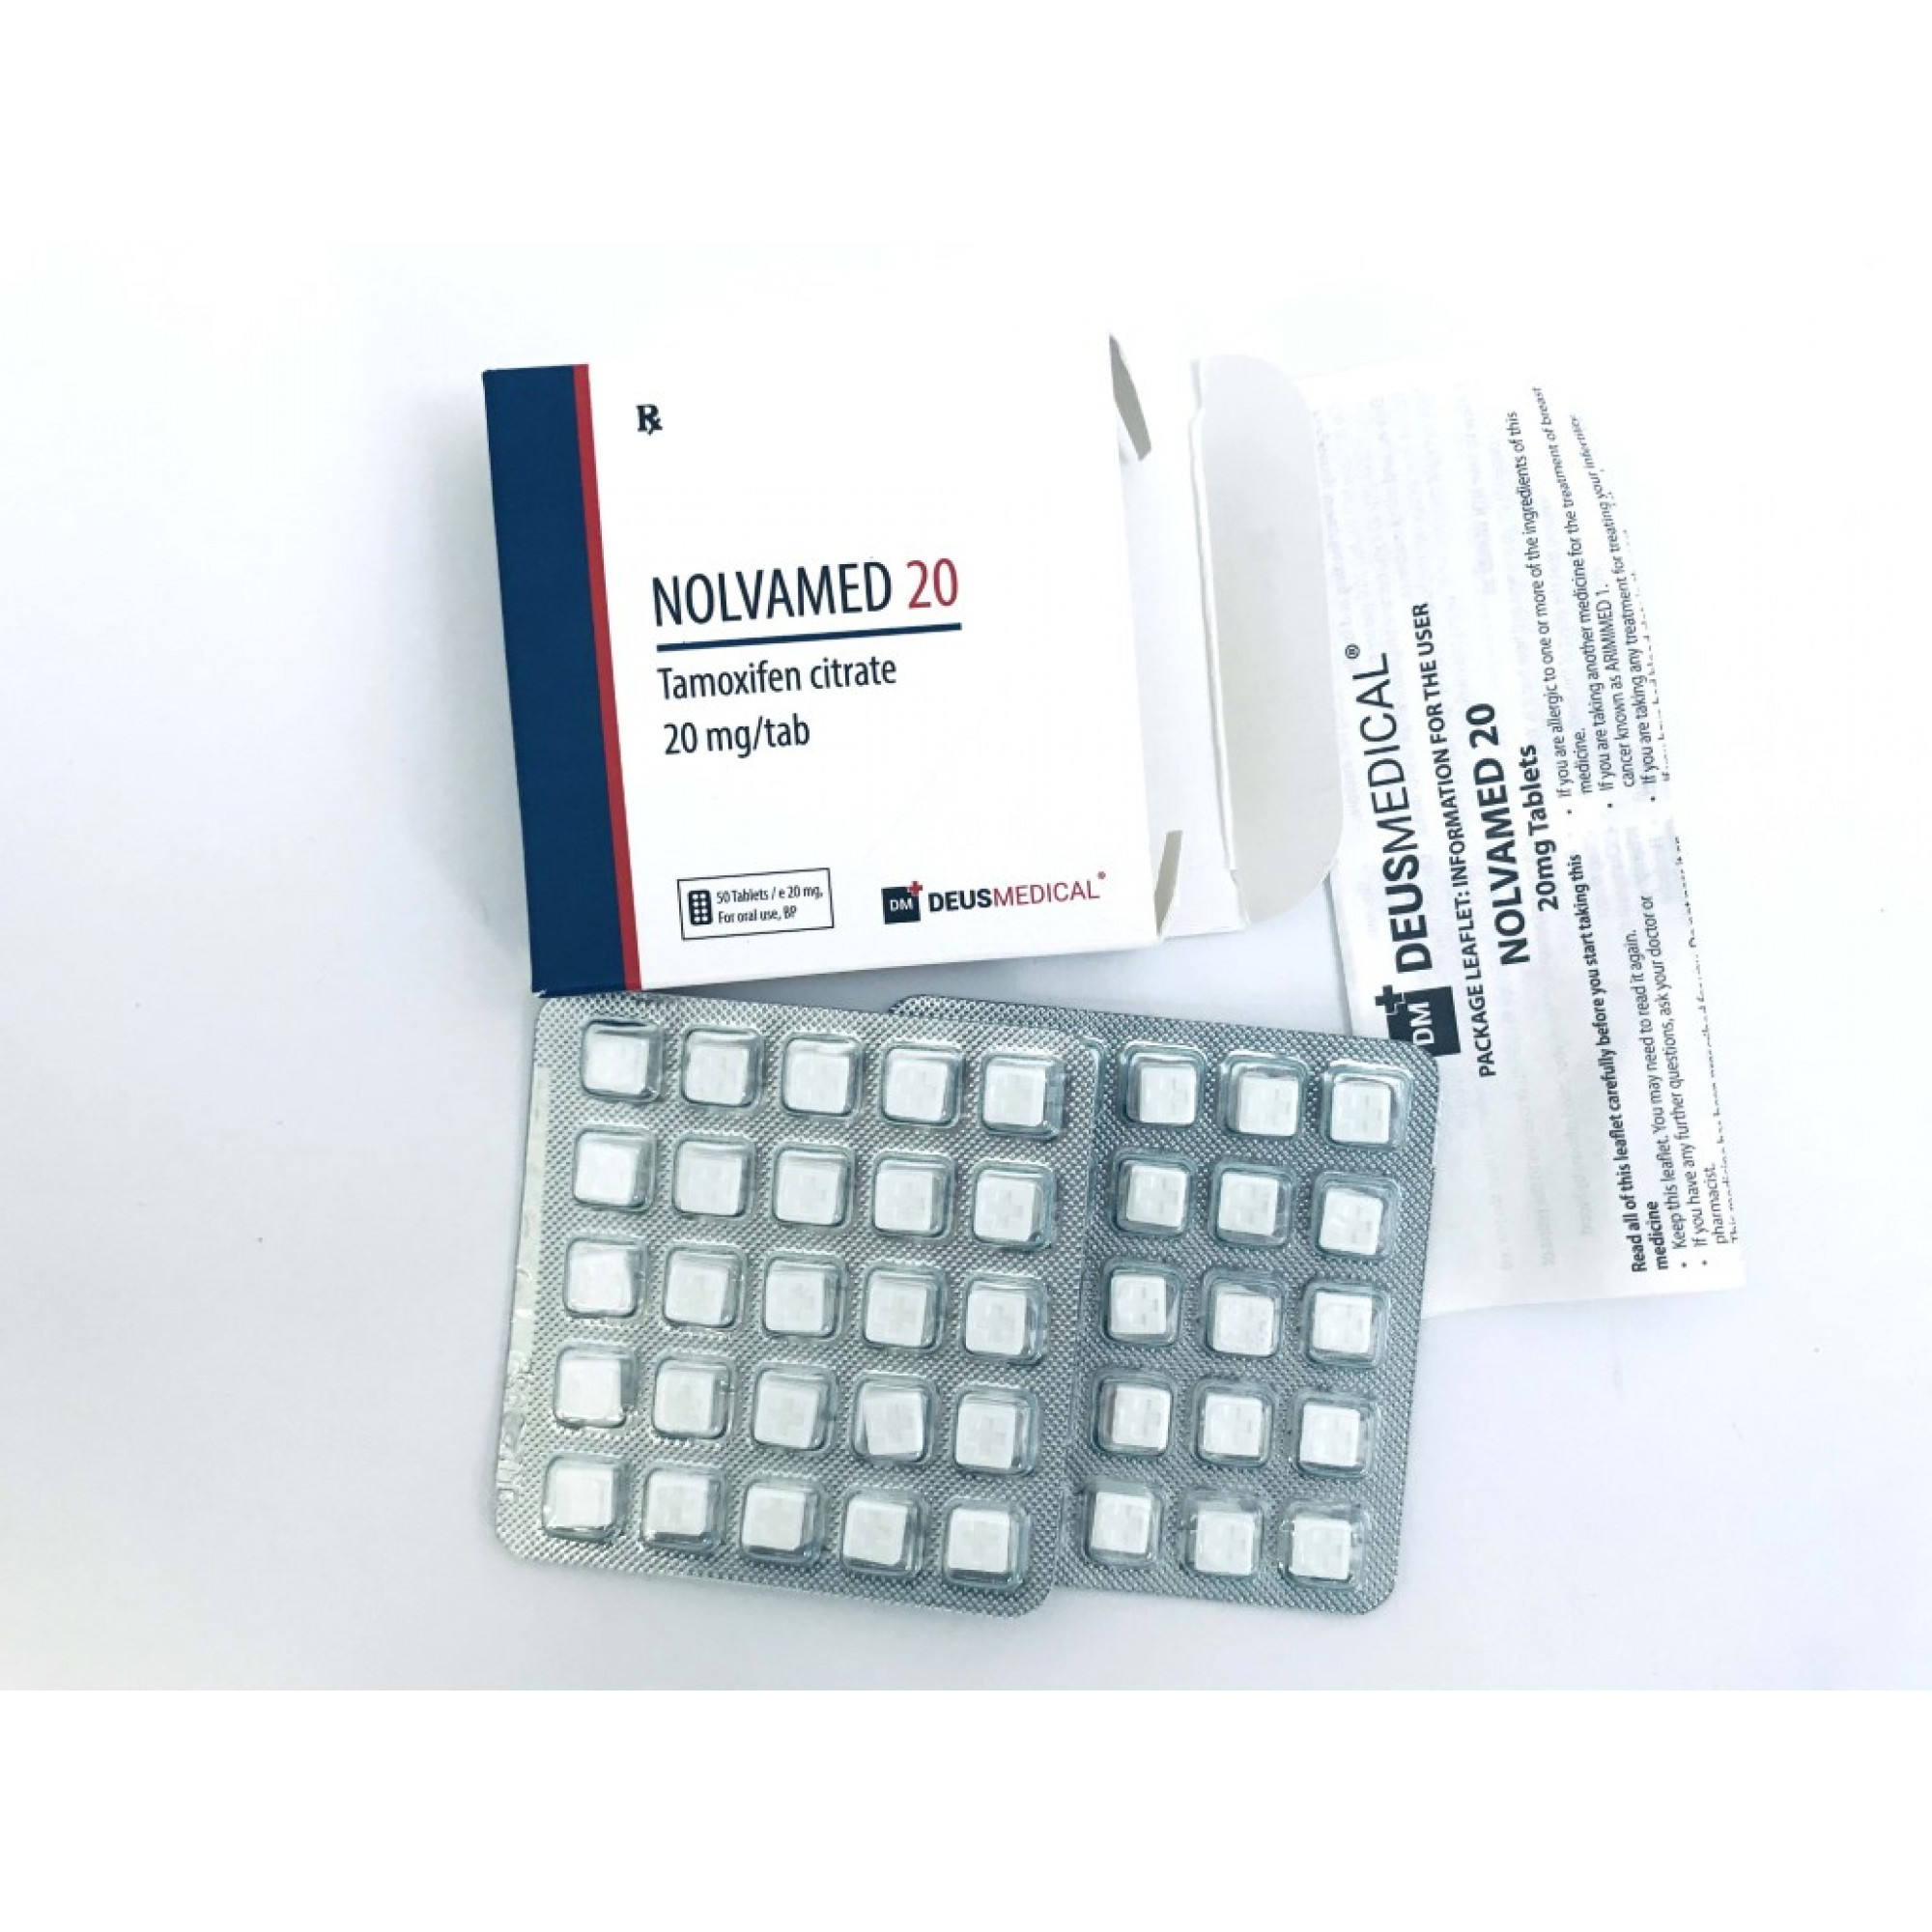 NOLVAMED 20 (Tamoxifen citrate), DEUS MEDICAL, BUY STEROIDS ONLINE - www.DEUSPOWER.com